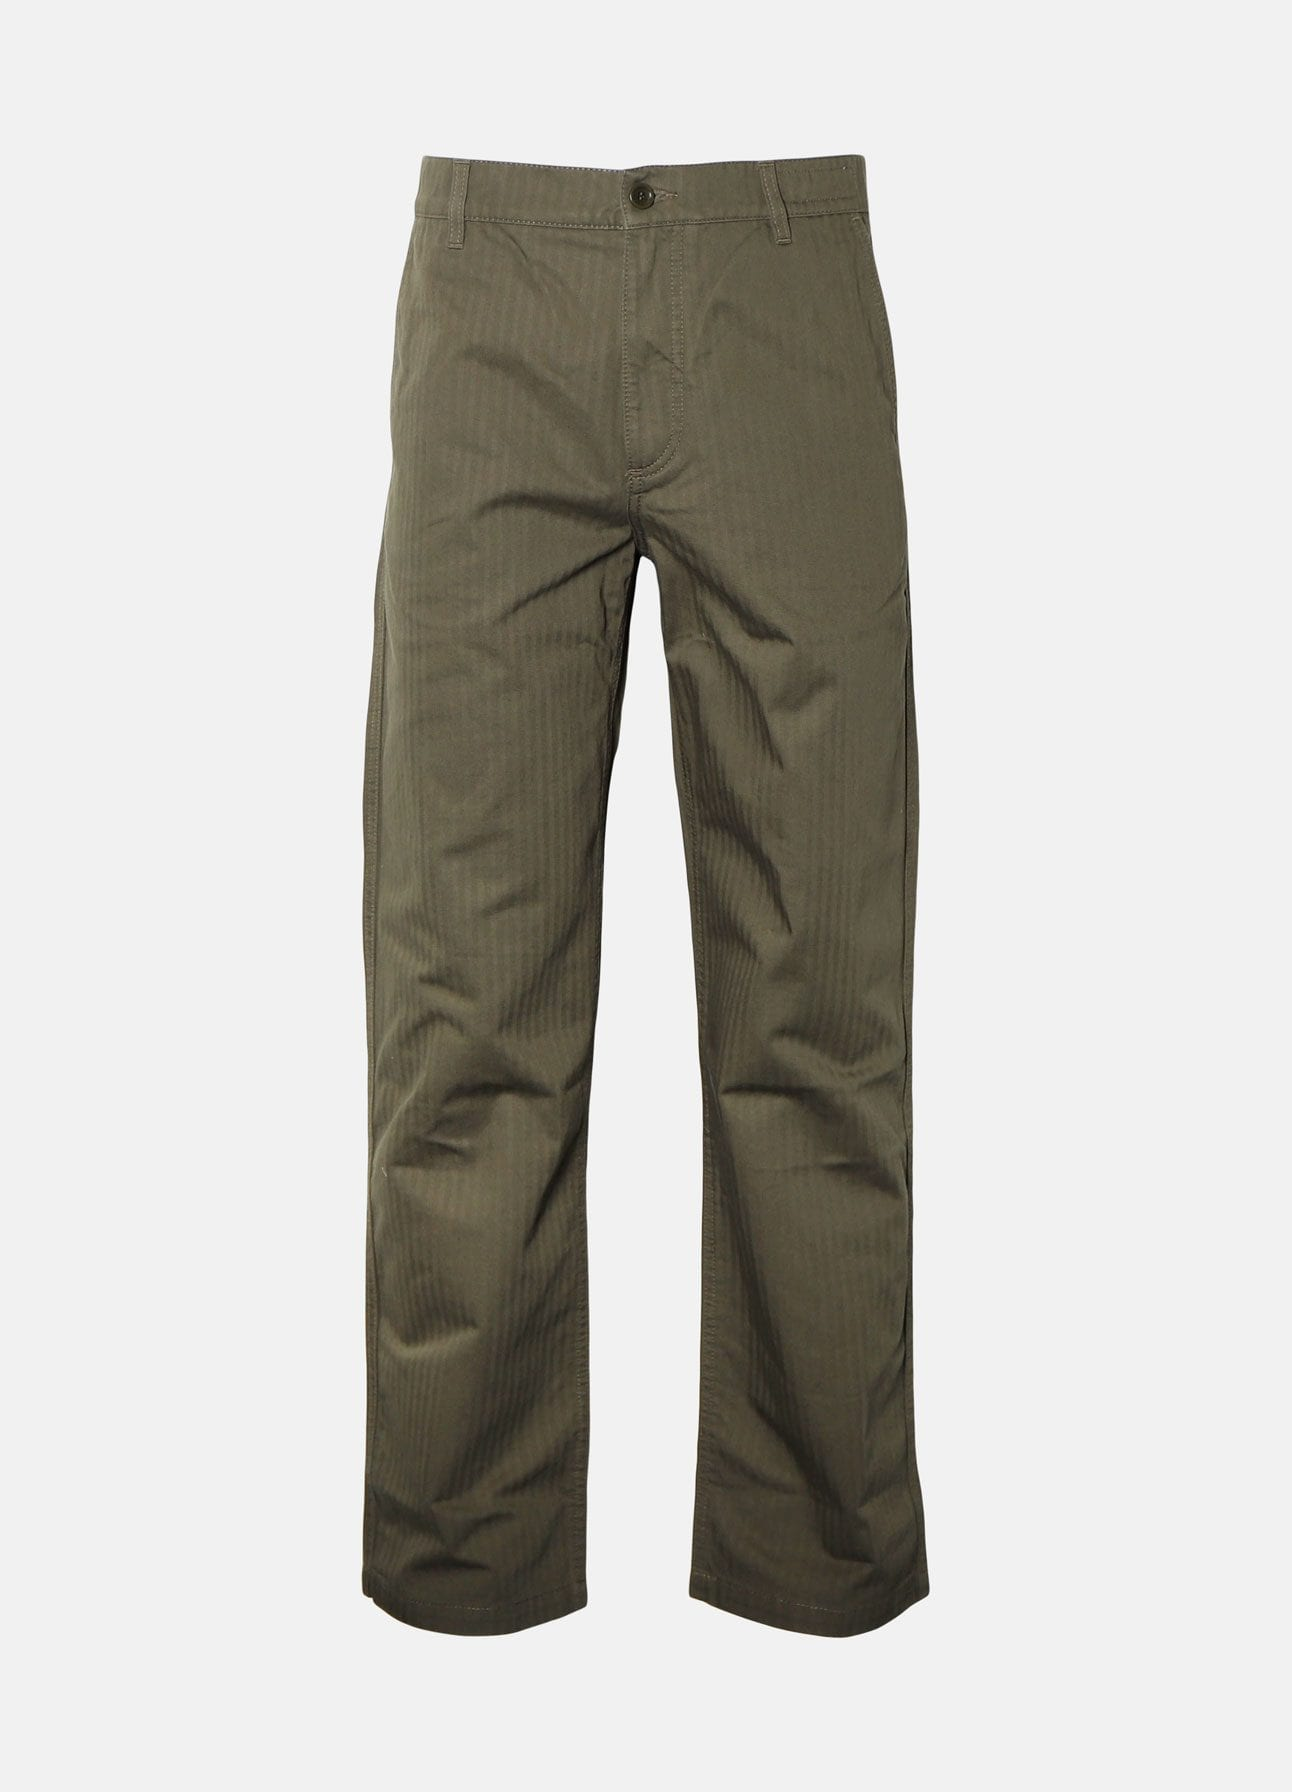 Green Josef bukser fra Norse Projects